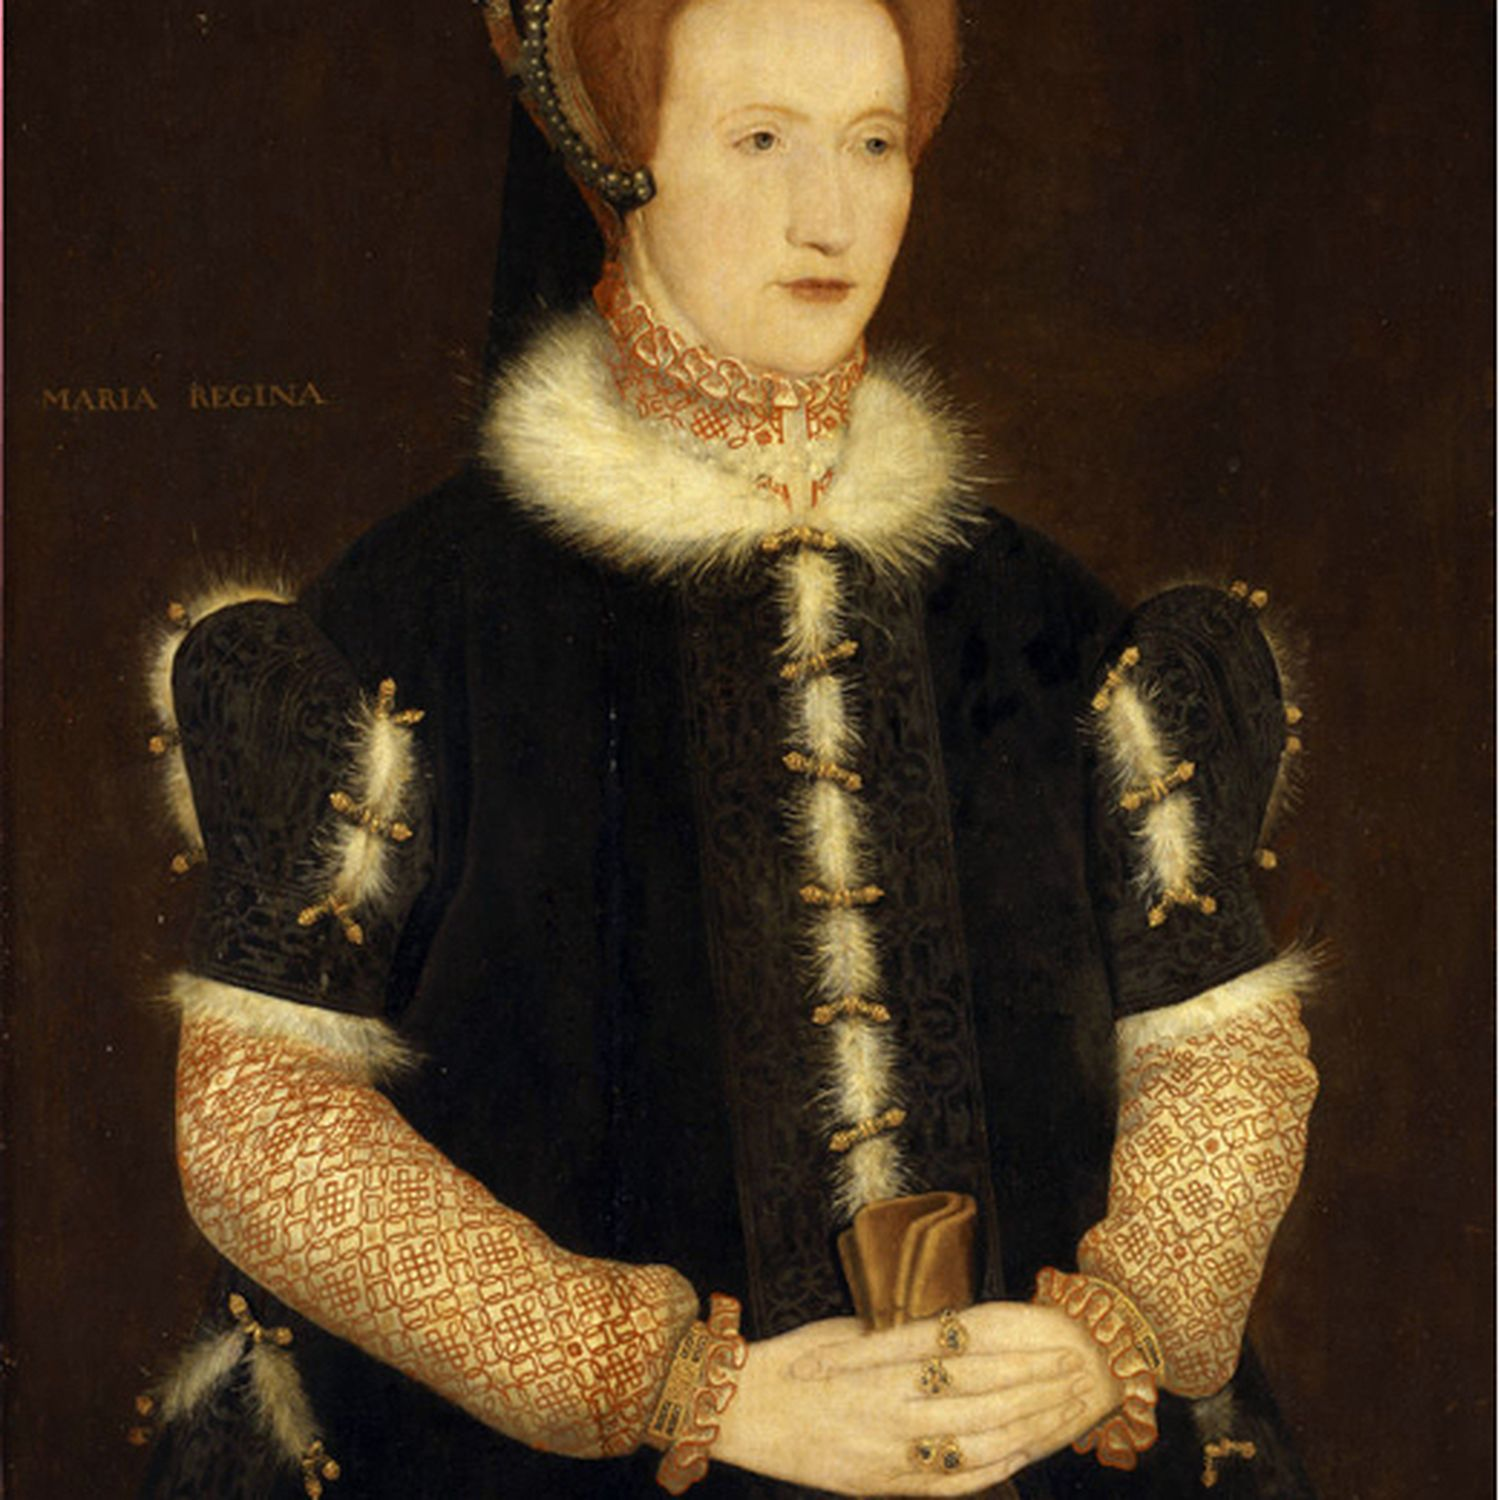 Episode 032: Bess of Hardwick